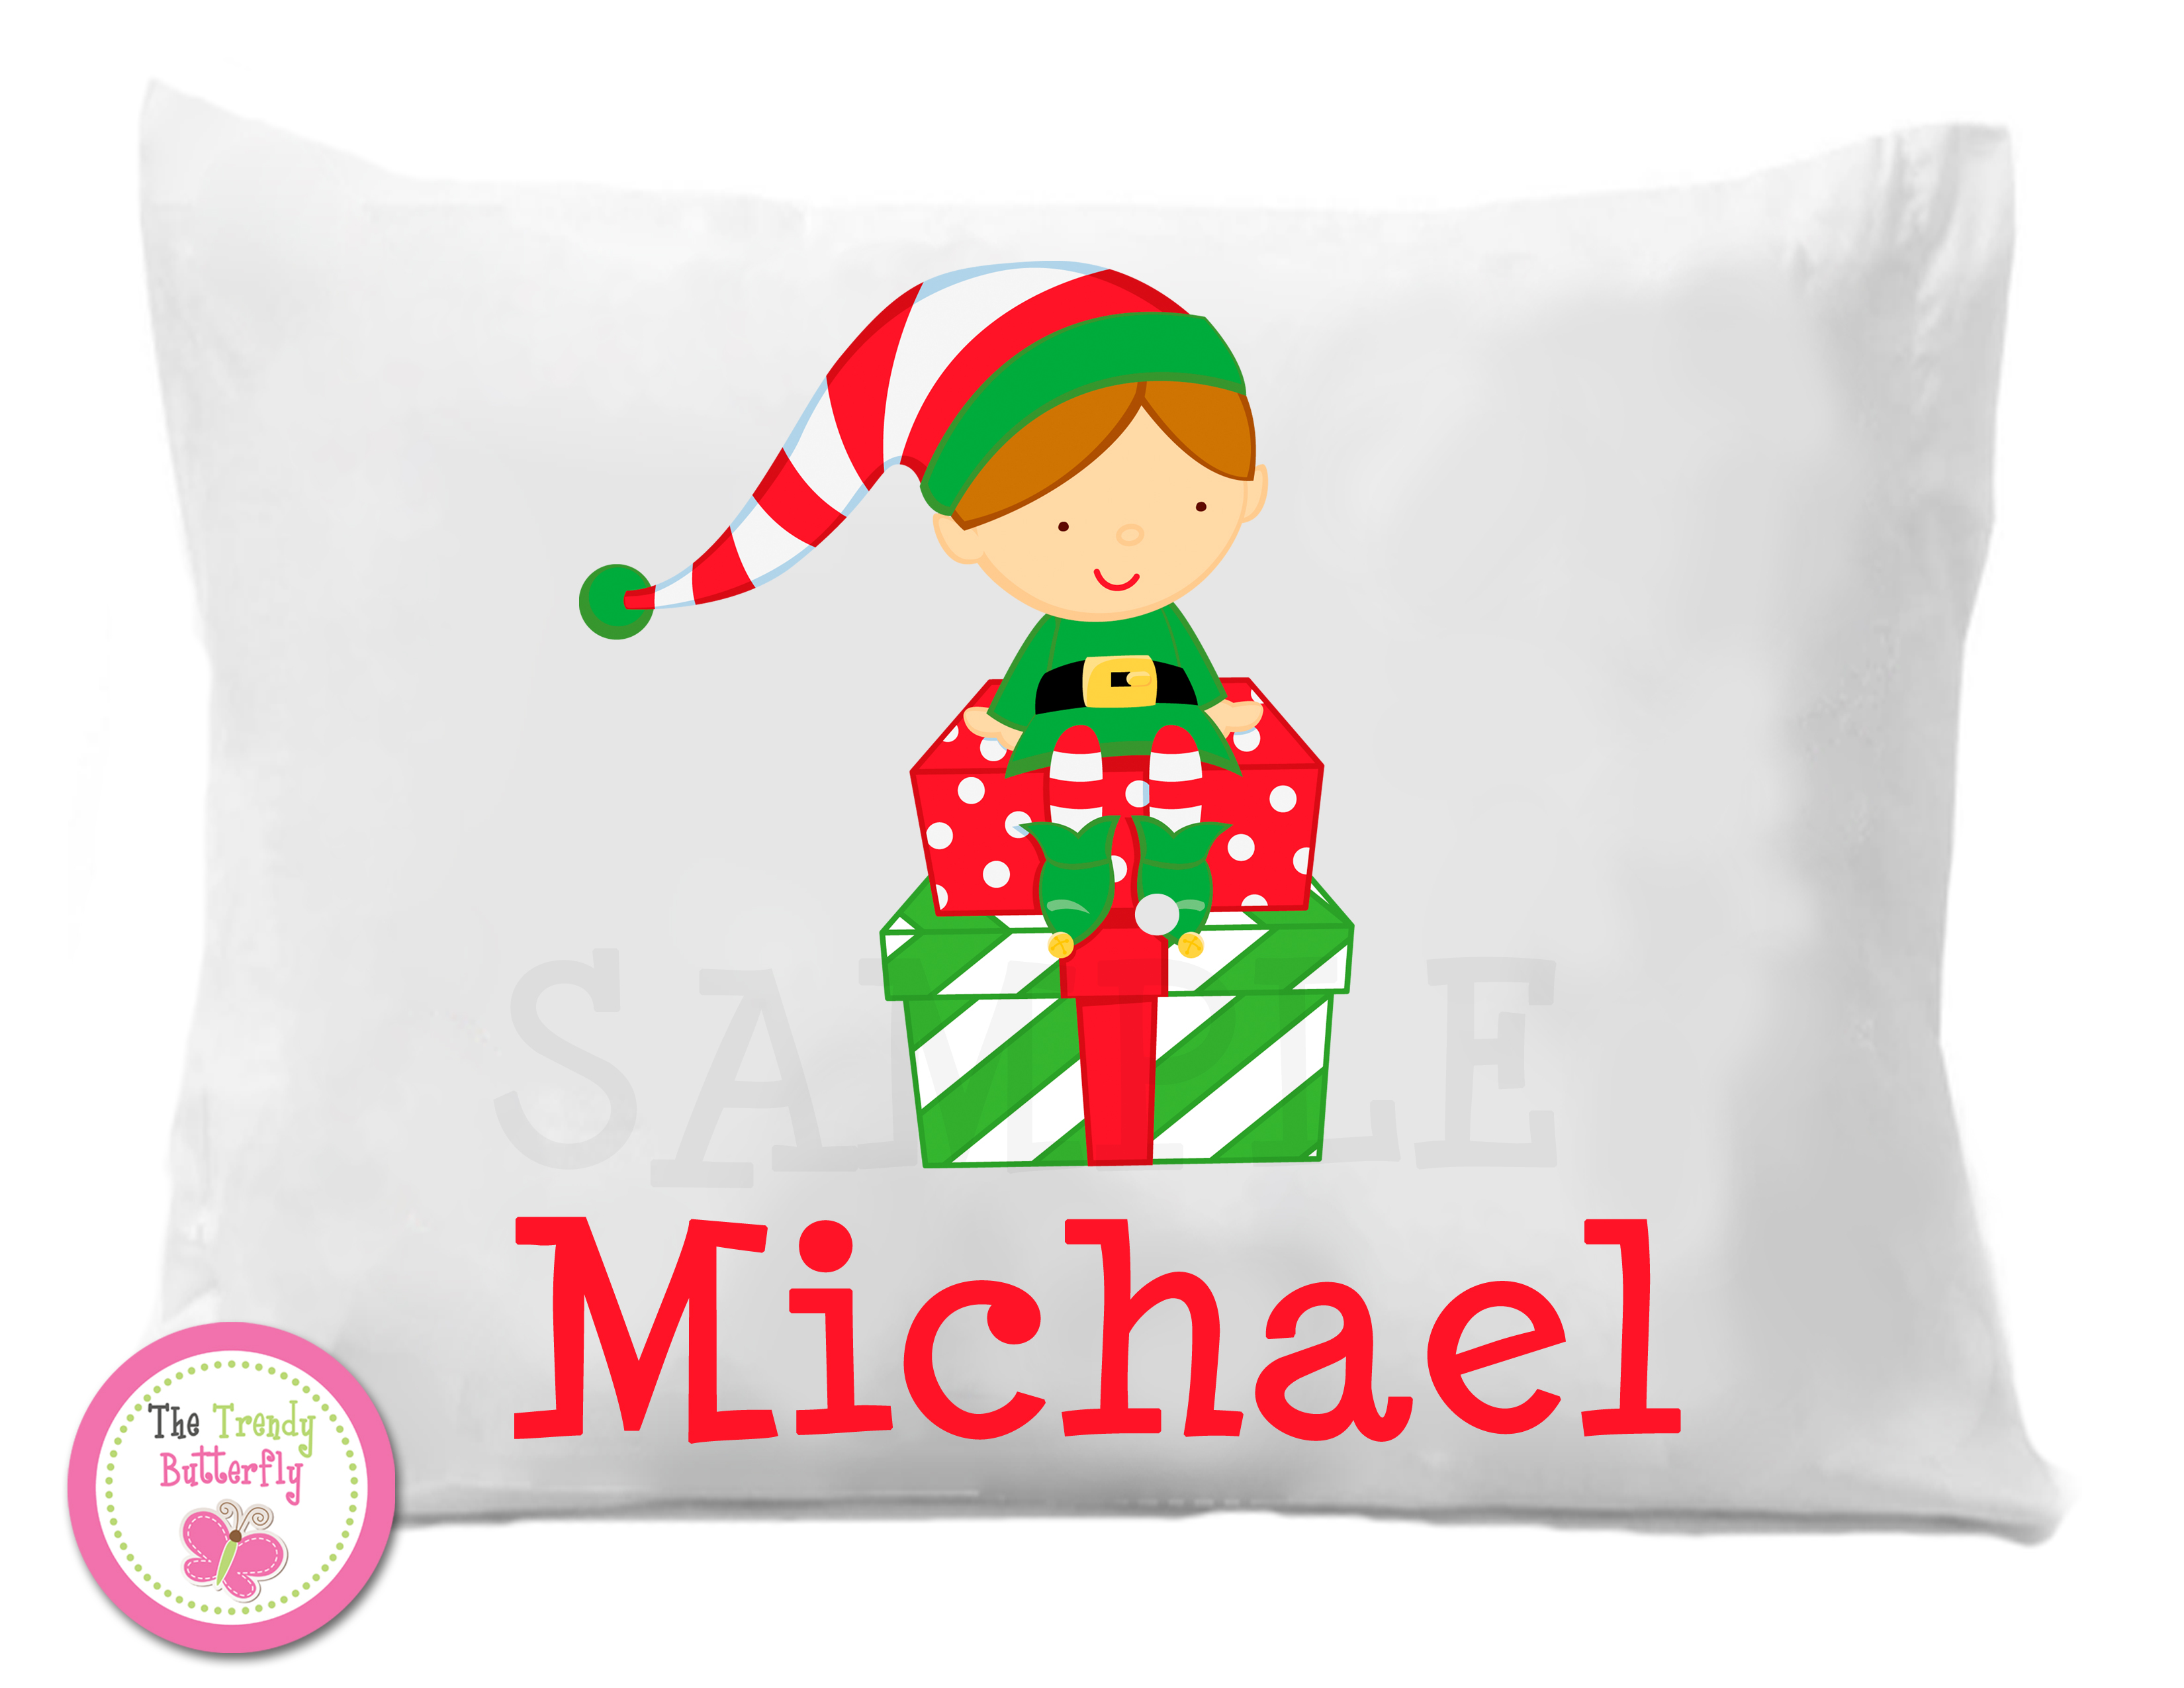 pillowcase throw pillows monogrammed pillowcases pillow gorgeous i me girls primary amazing monogram hairy face twisted side little by design cases kids custom personalised together customized gh with my own formidable facepillowcase boys personalized your